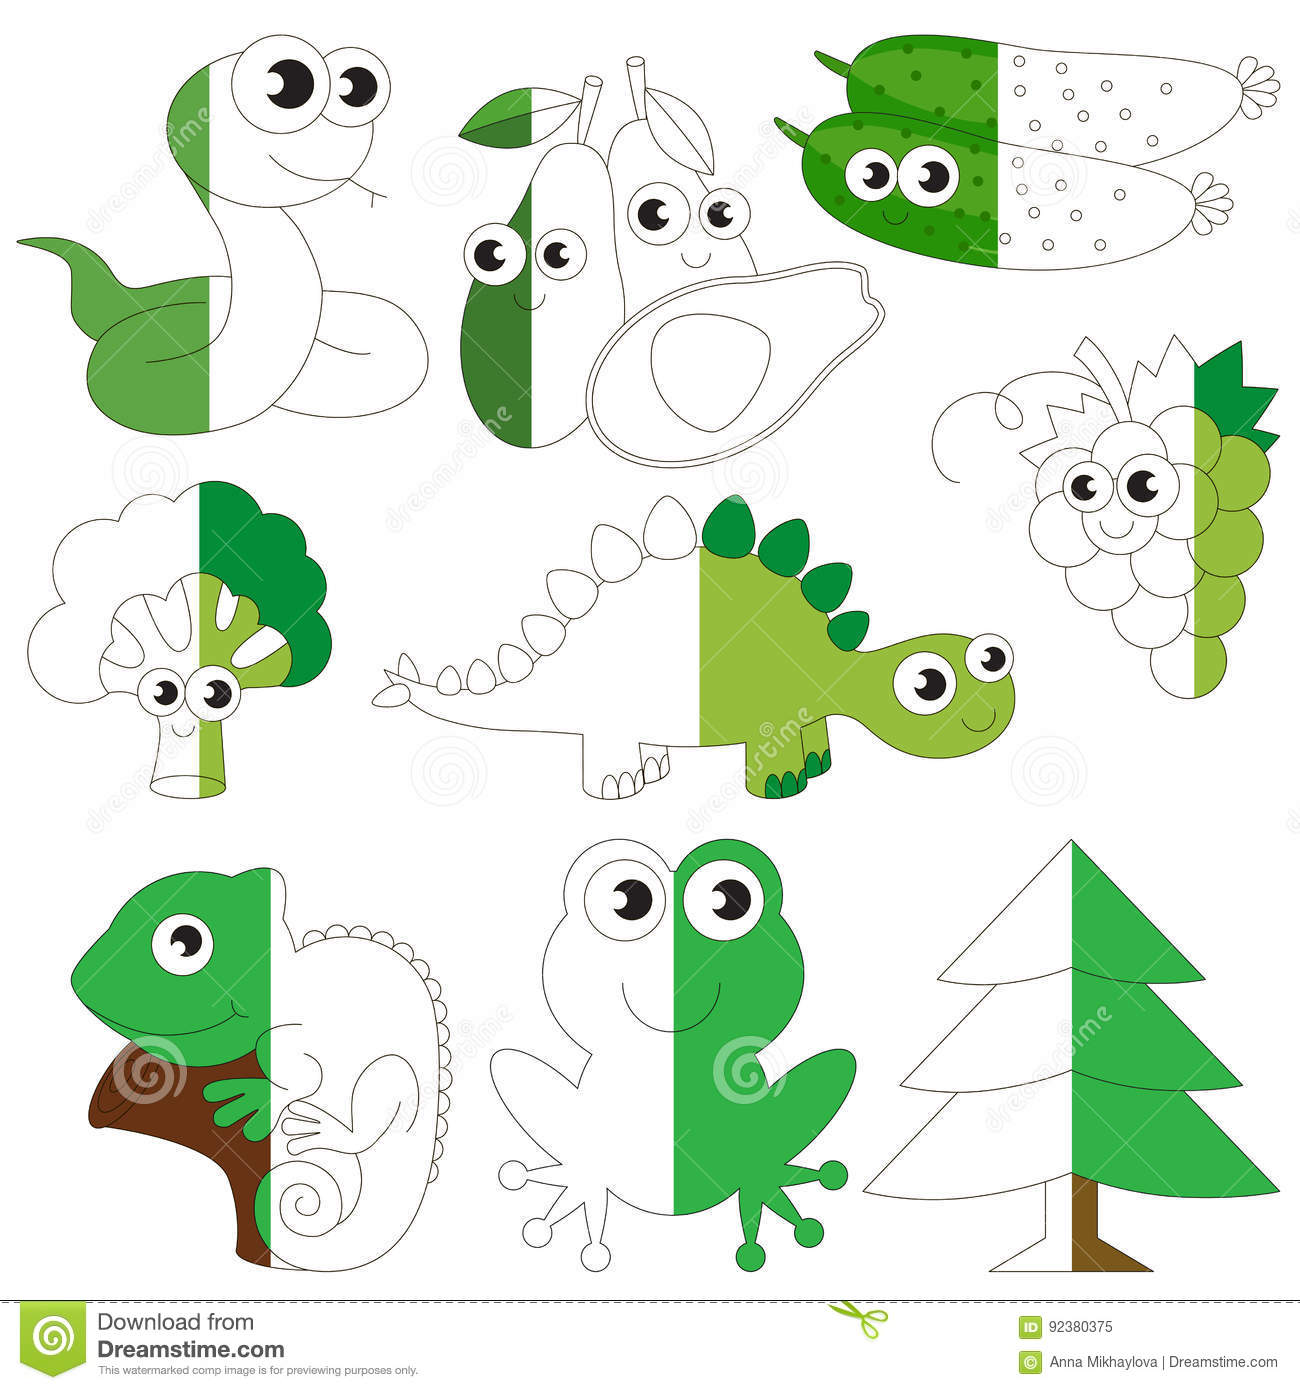 Green Color Animals Fruits And Vegetables The Big Kid